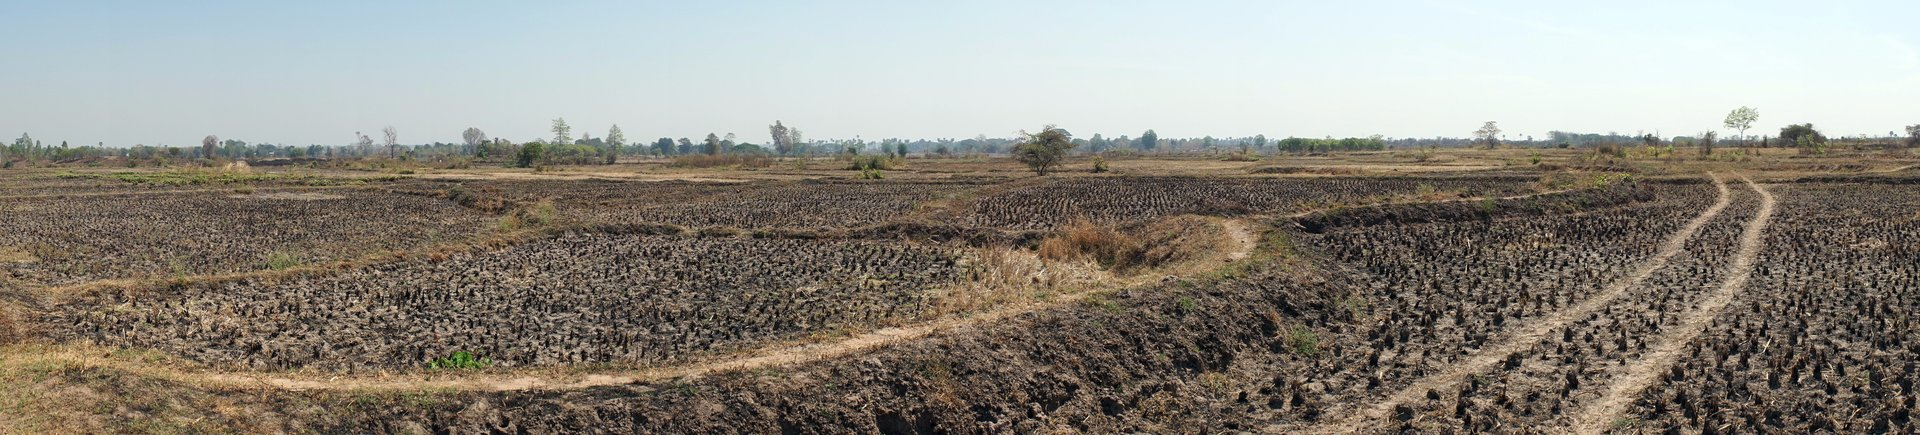 The Problems Associated With Adding Liquid Manure To Dry Fields